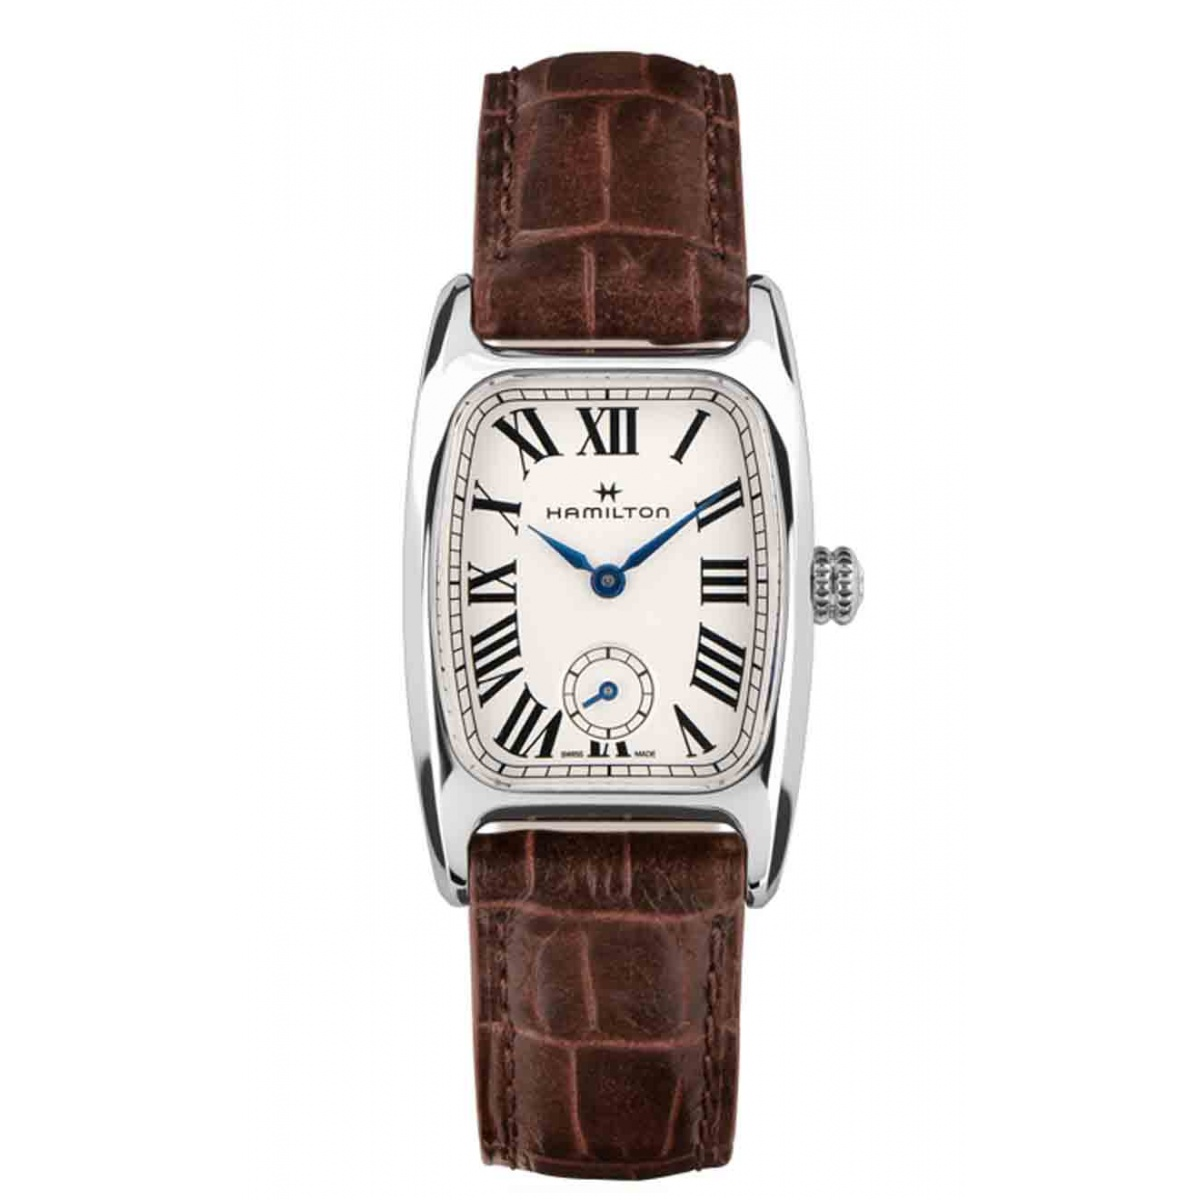 Hamilton AMERICAN CLASSIC BOULTON SMALL SECOND QUARTZ 50 M - 8,64 mm, Esfera blanca, piel marrón